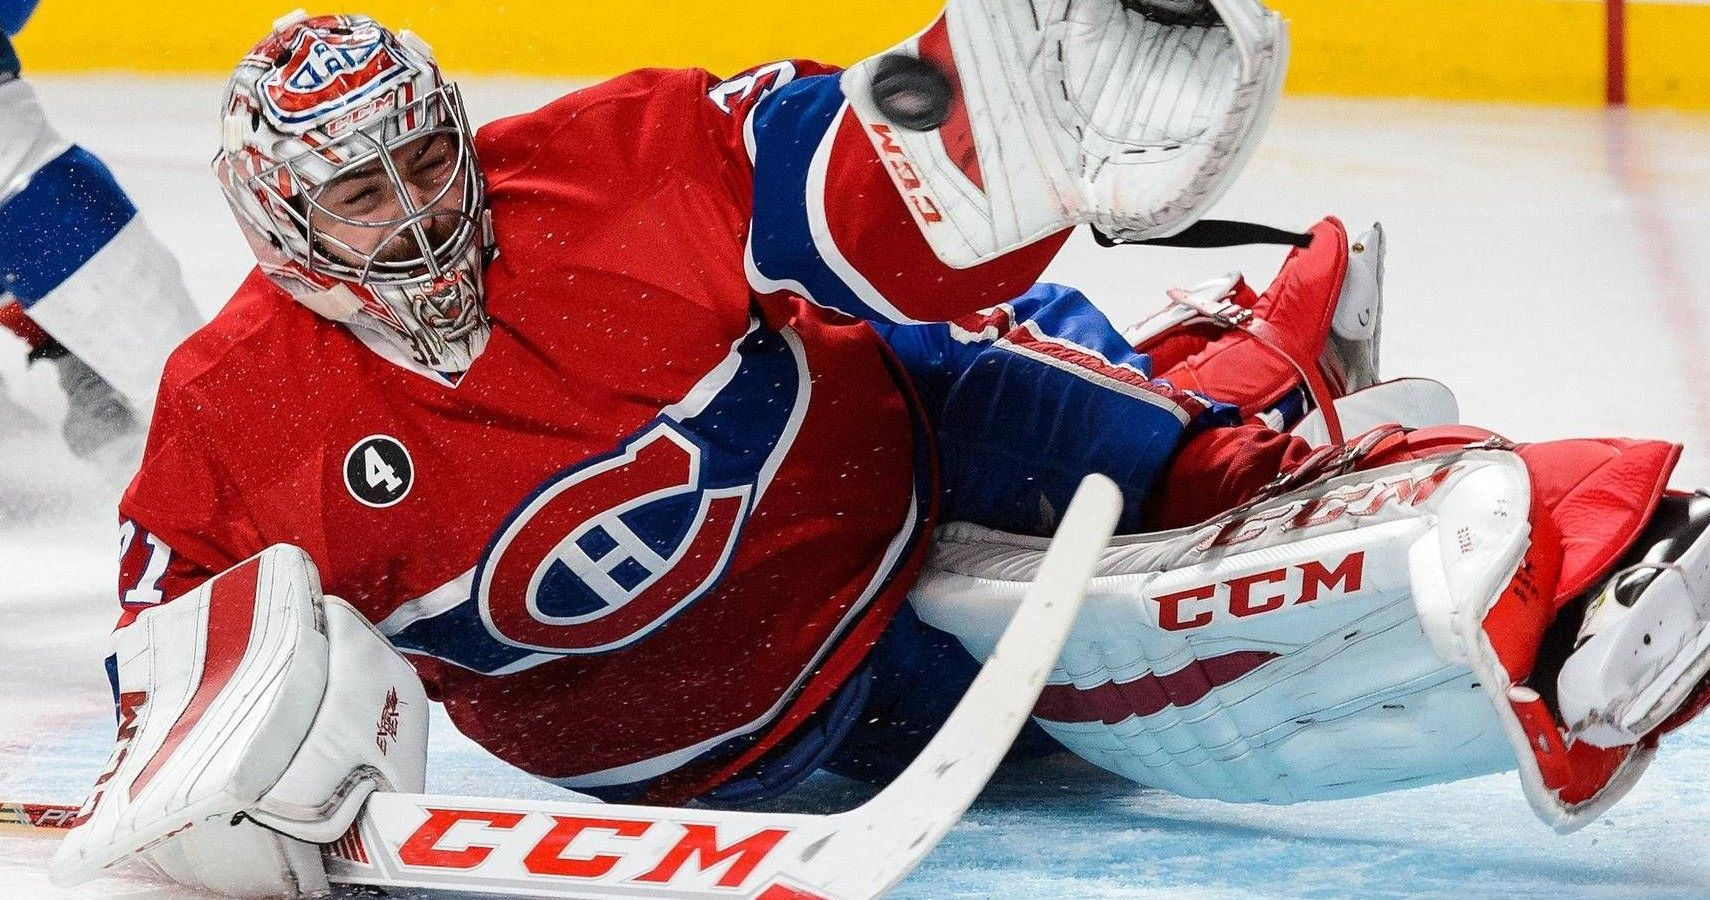 Nhl Goalie Carey Price Hugs Young Fan Who Just Lost His Mother To Cancer